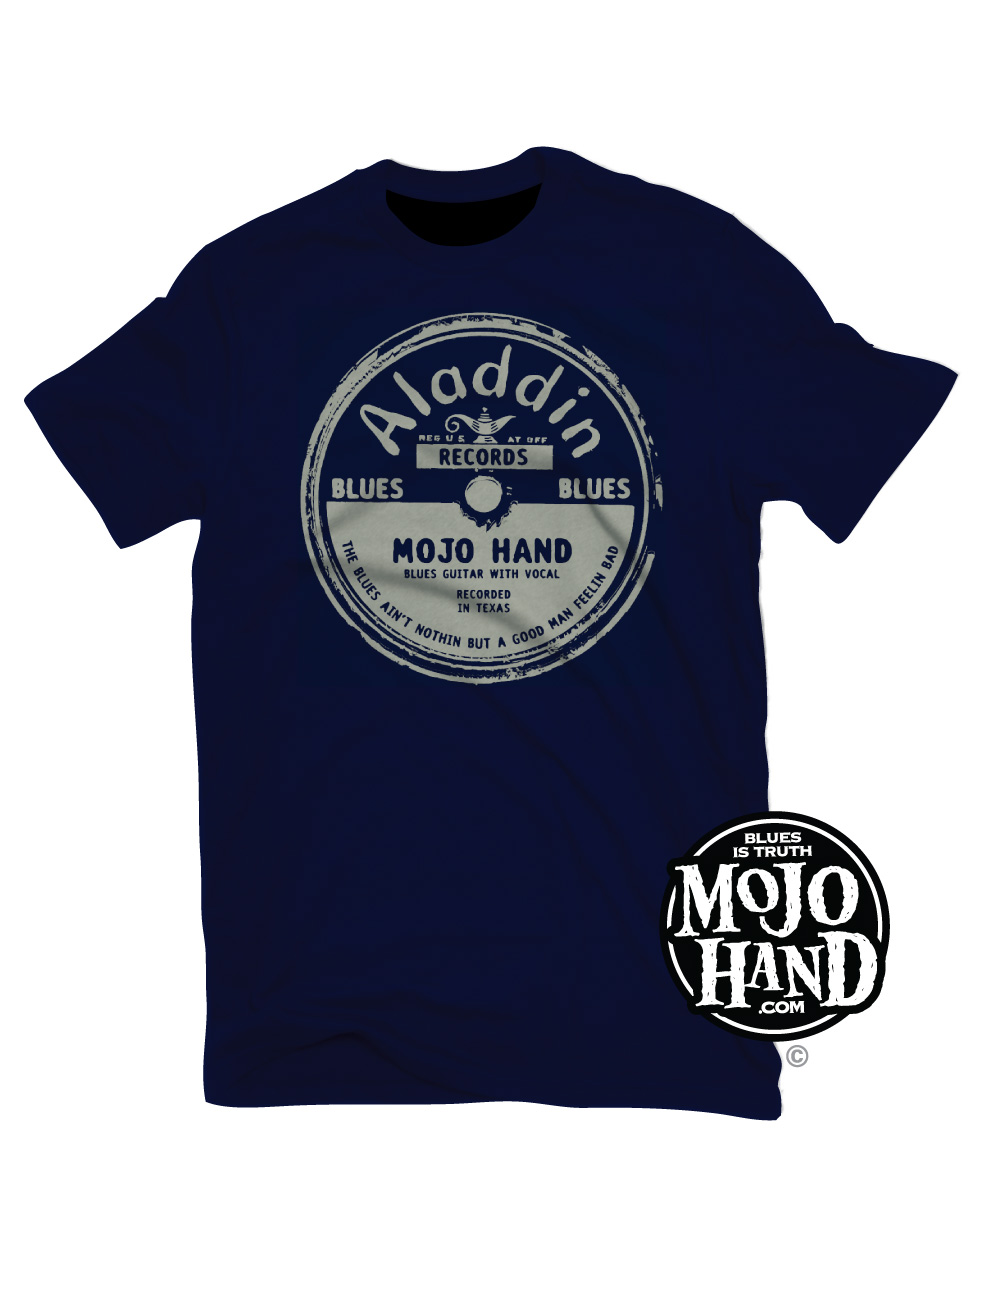 Aladdin blues record label t shirt mojohand everything for Vintage record company t shirts